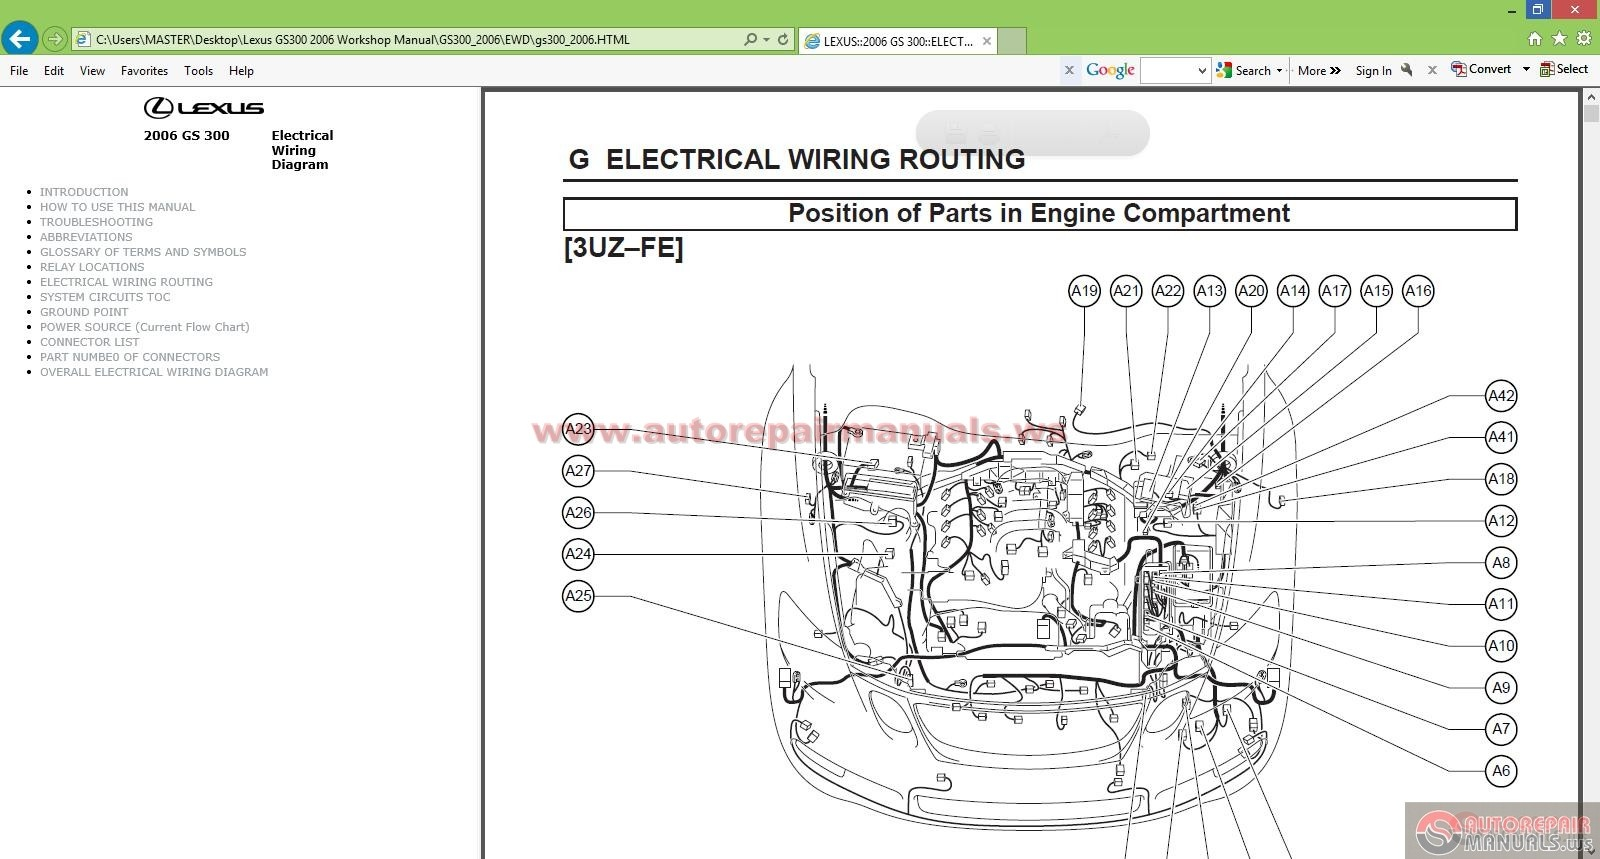 2006 Lexus Gs 300 Wiring Diagram Manual Guide Gs300 Engine Library Rh 7 Codingcommunity De Is 250 2004